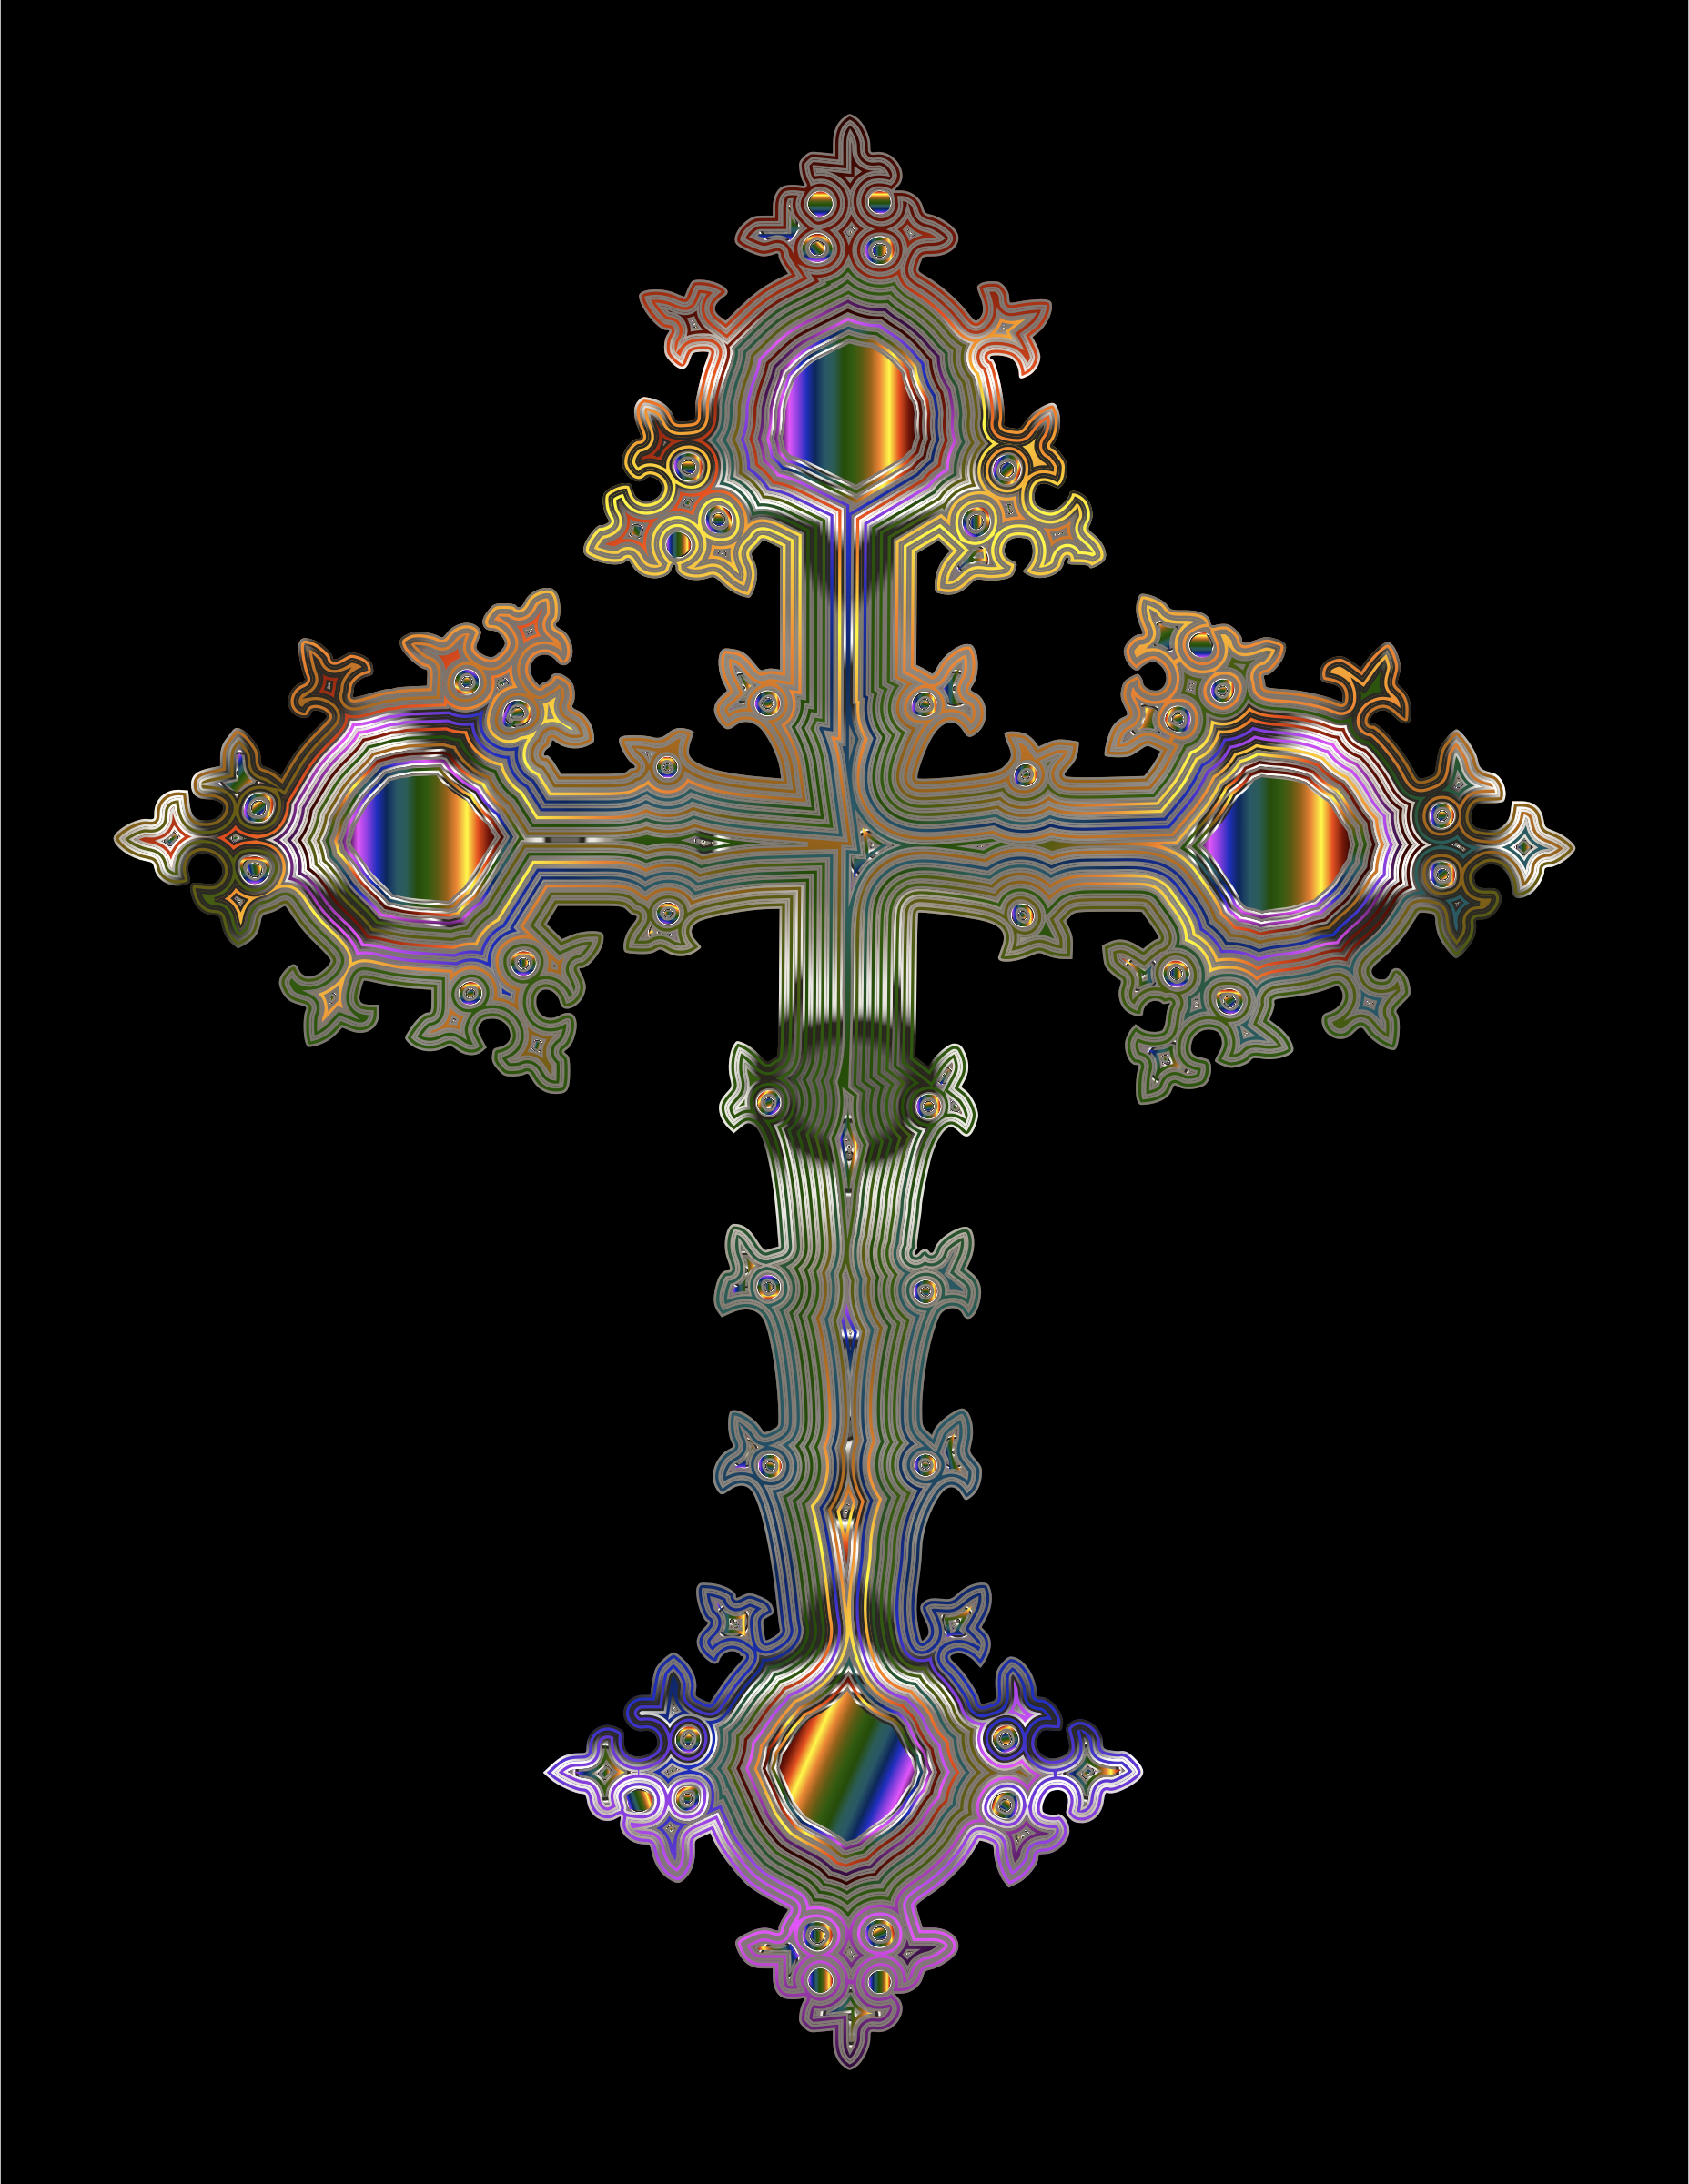 Prismatic Ornate Cross by GDJ